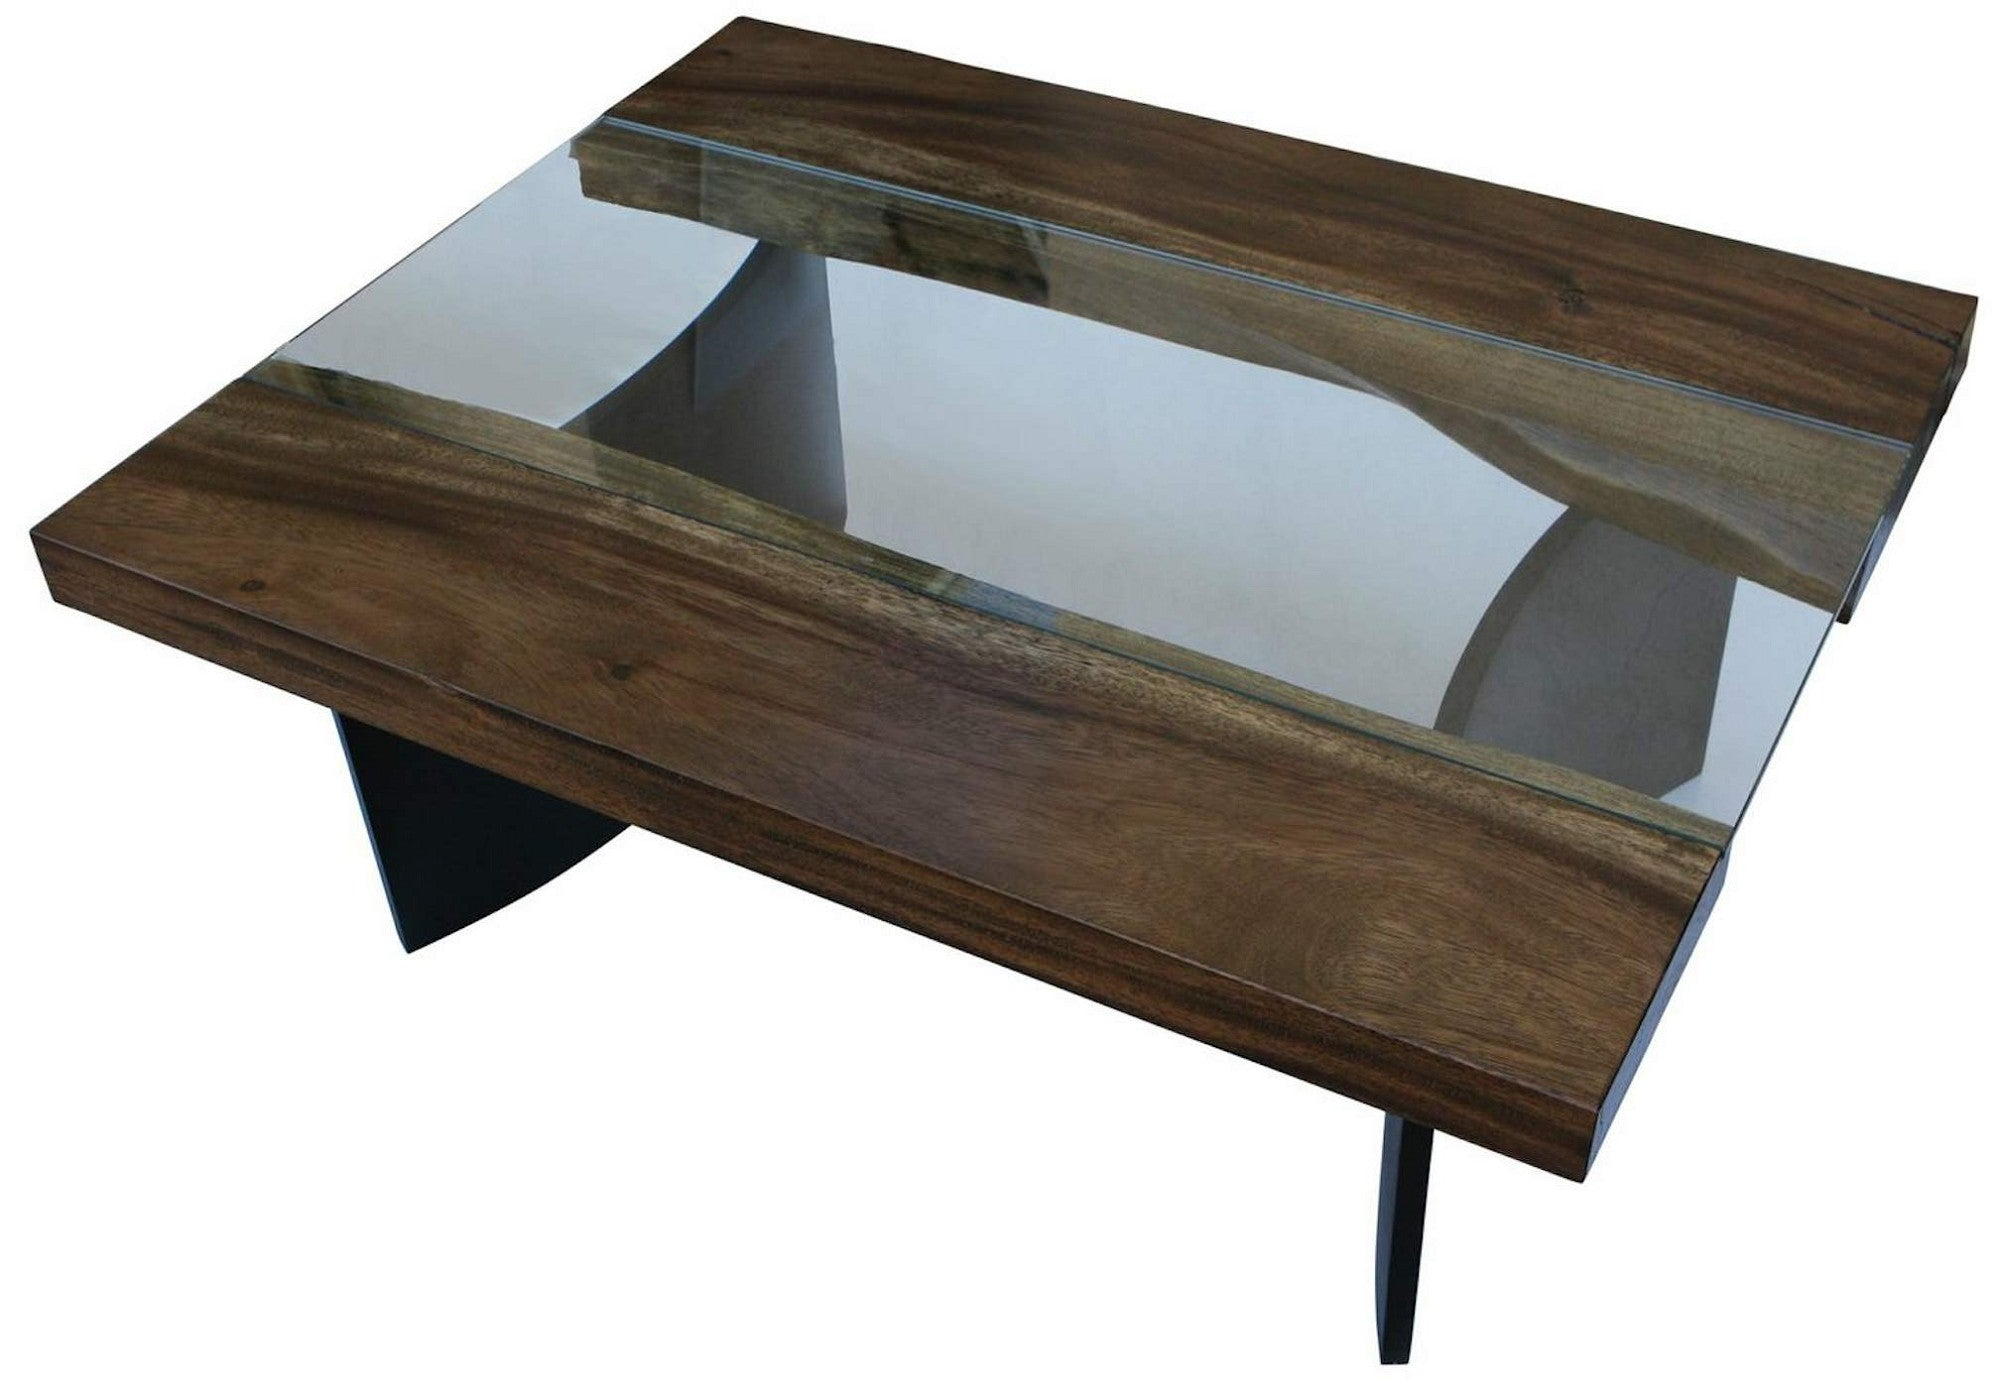 free edge modern industrial coffee table free edge modern industrial coffee table